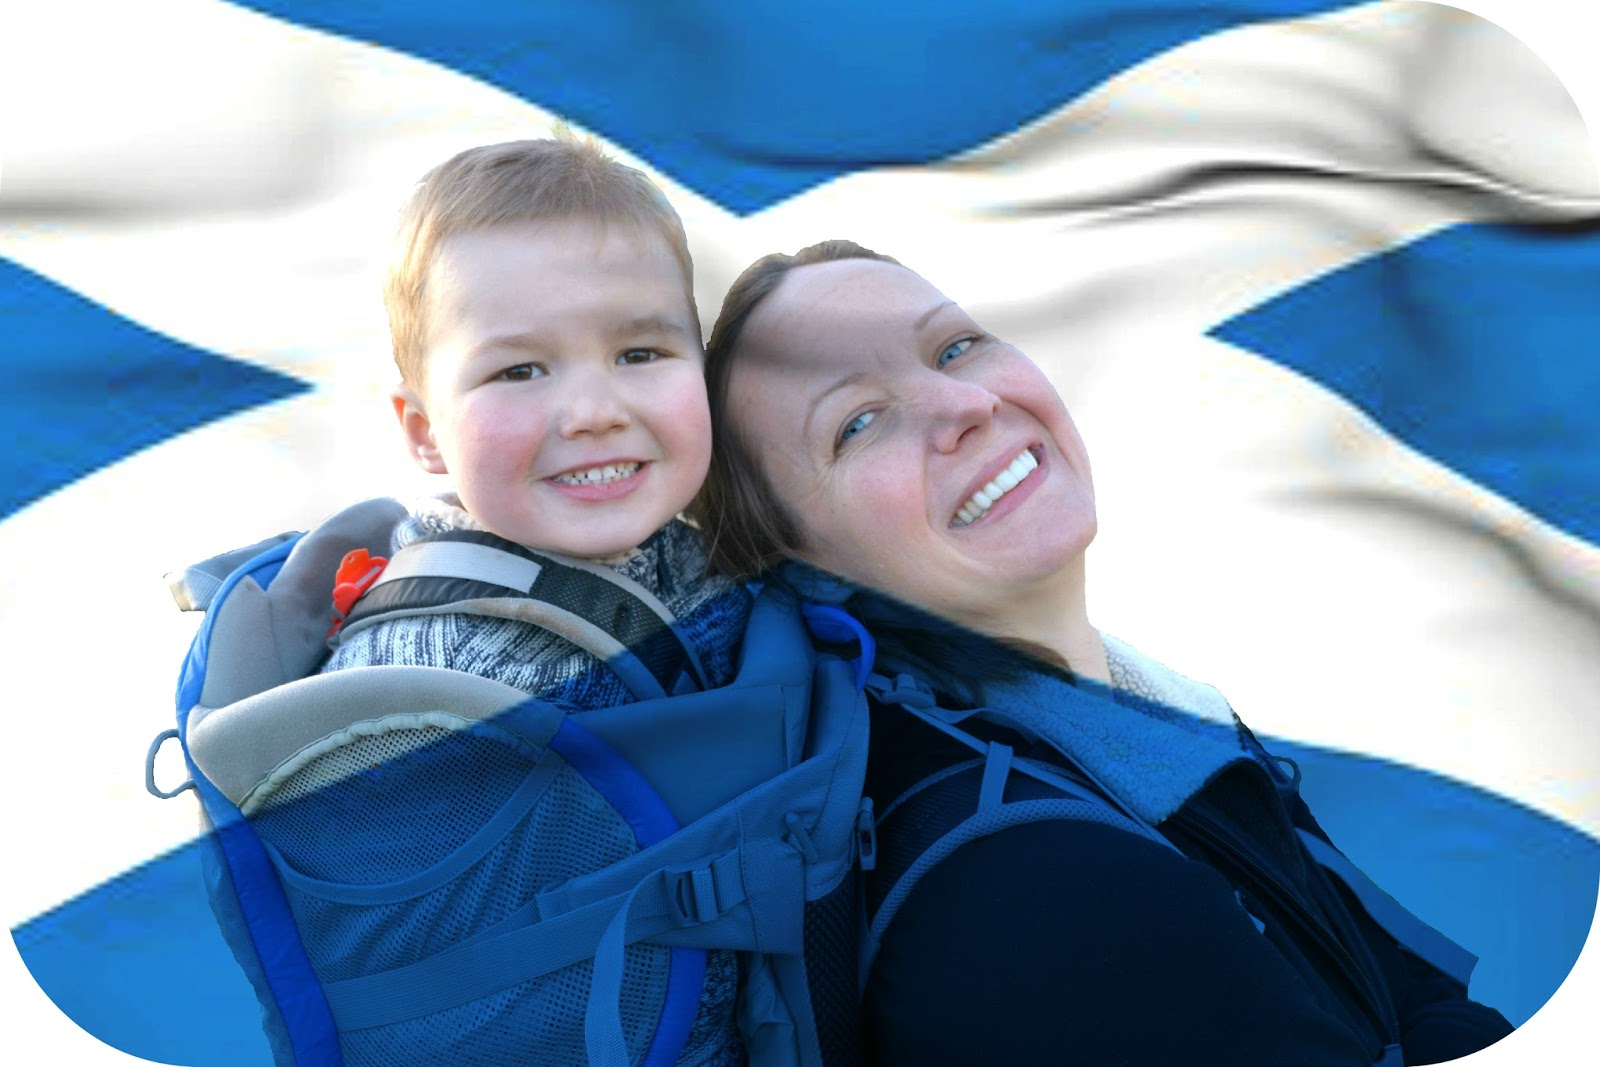 A third culture kid? Kate and Jackson with Scottish flag